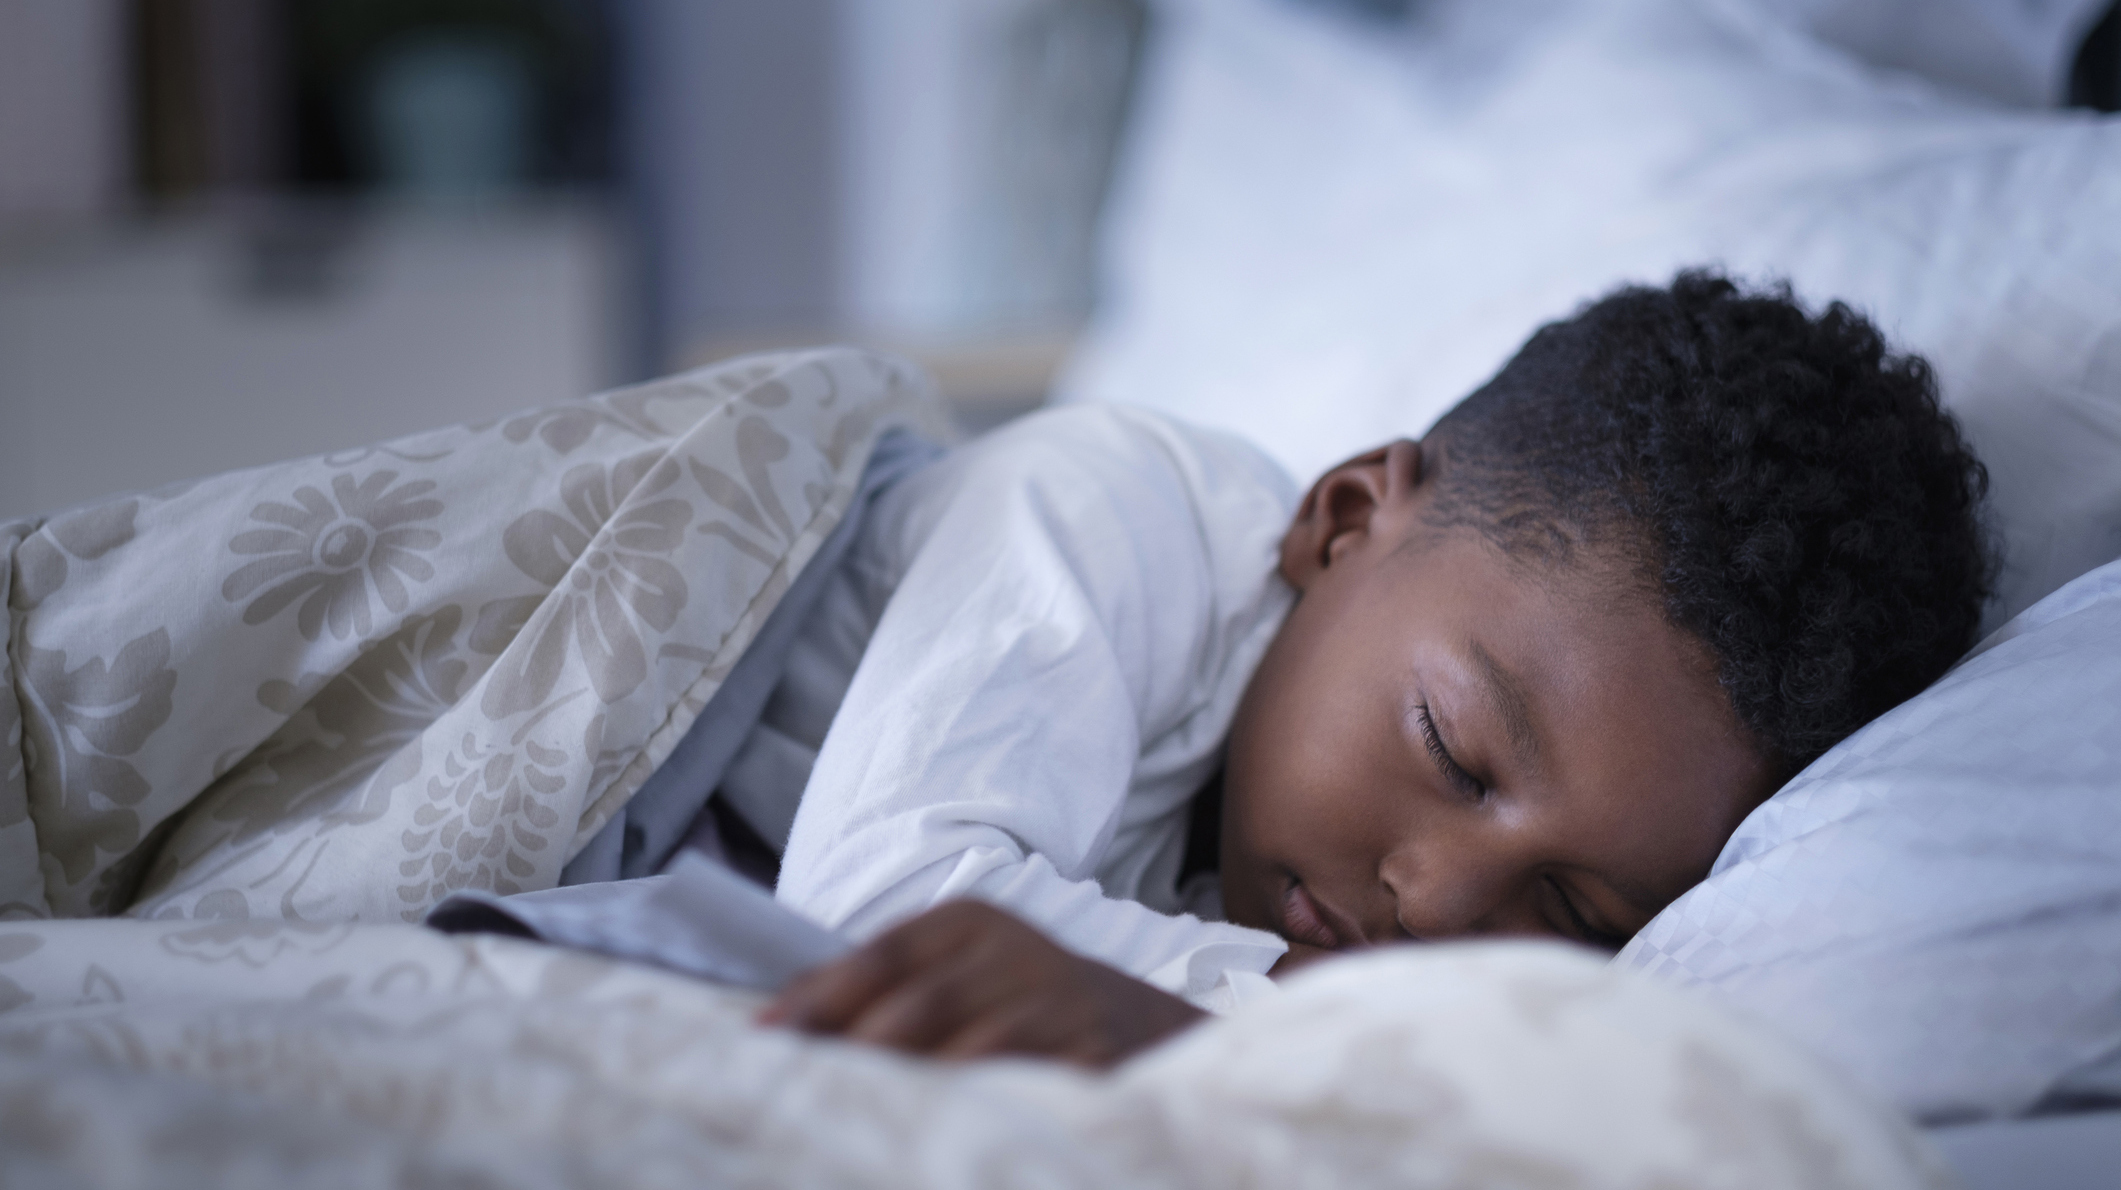 The Kids Are Sleeping Wallpapers High Quality Download Free